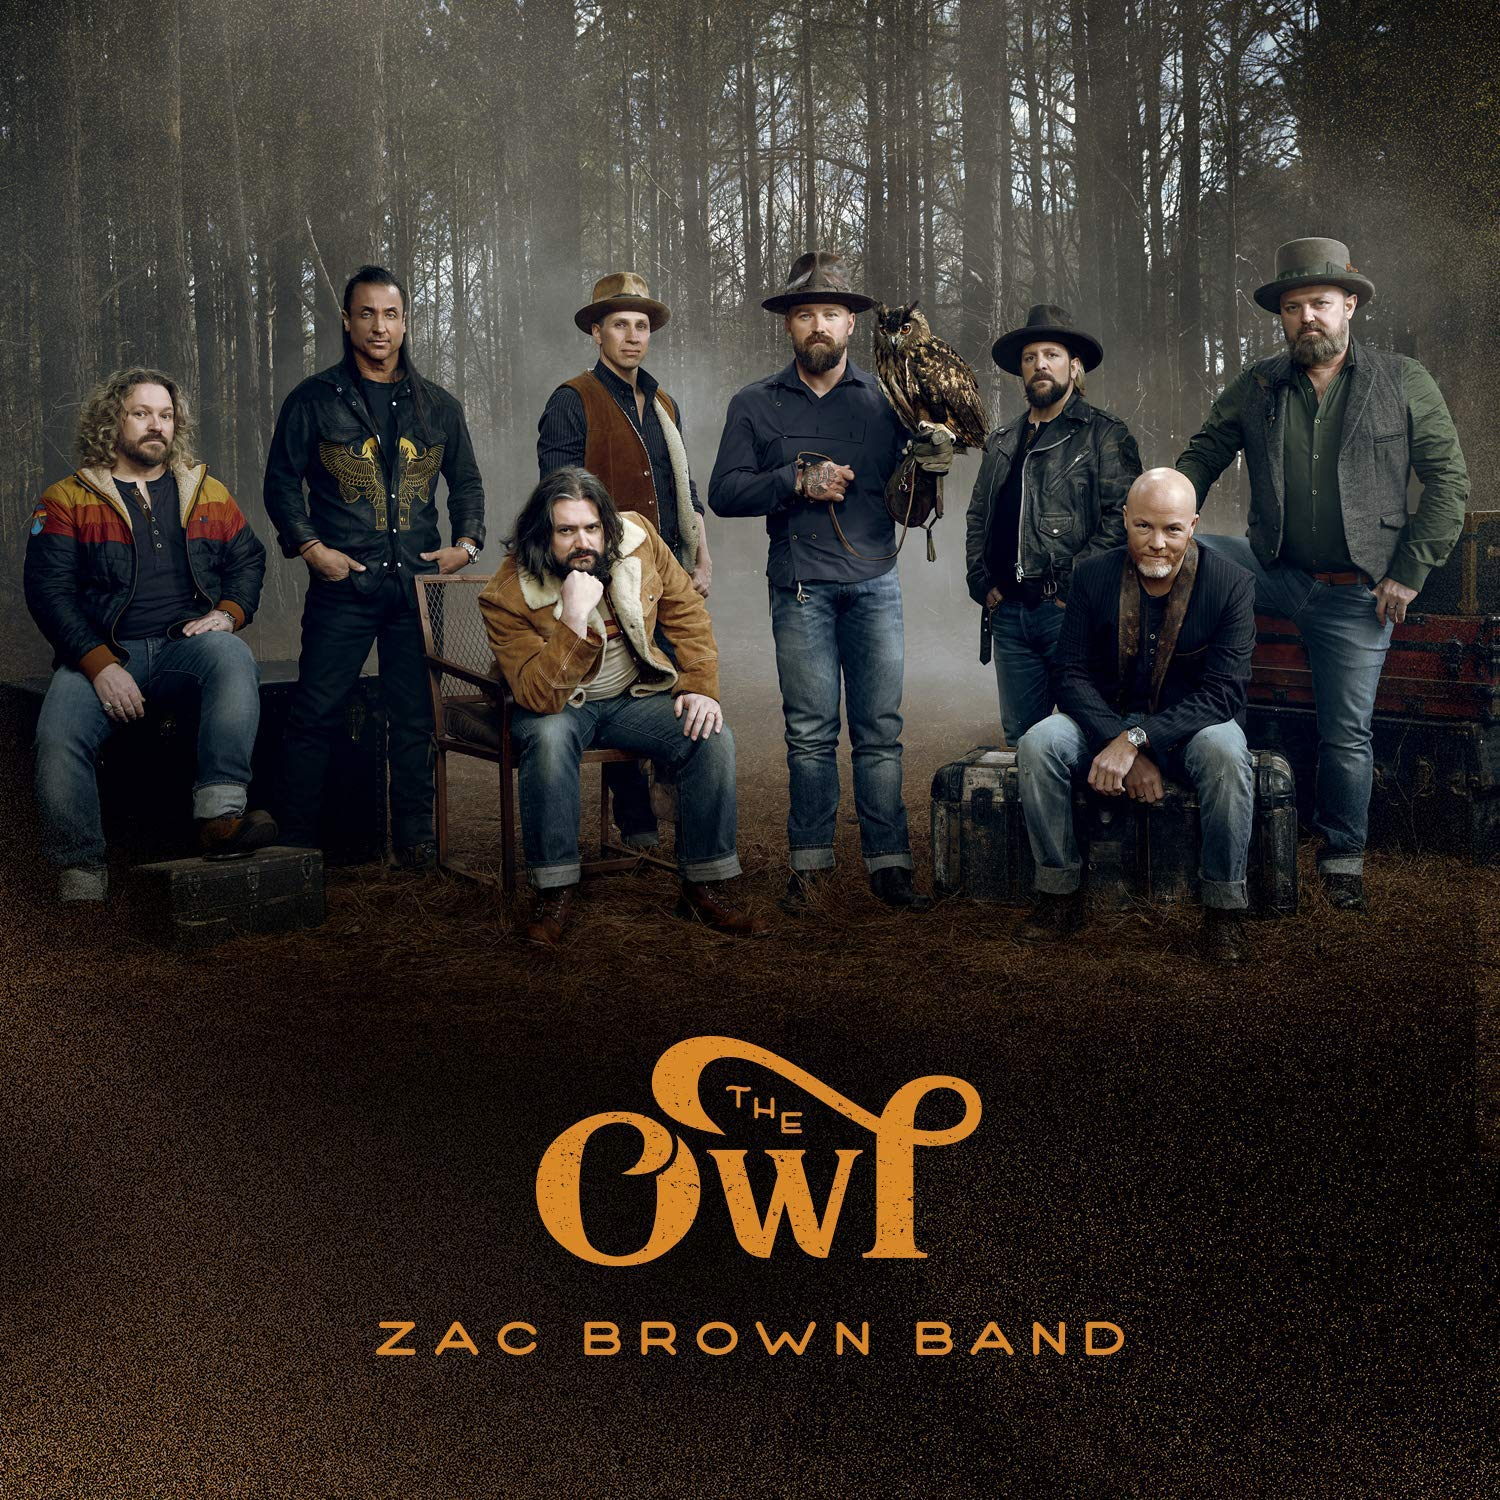 Brown, Zac/The Owl [LP]